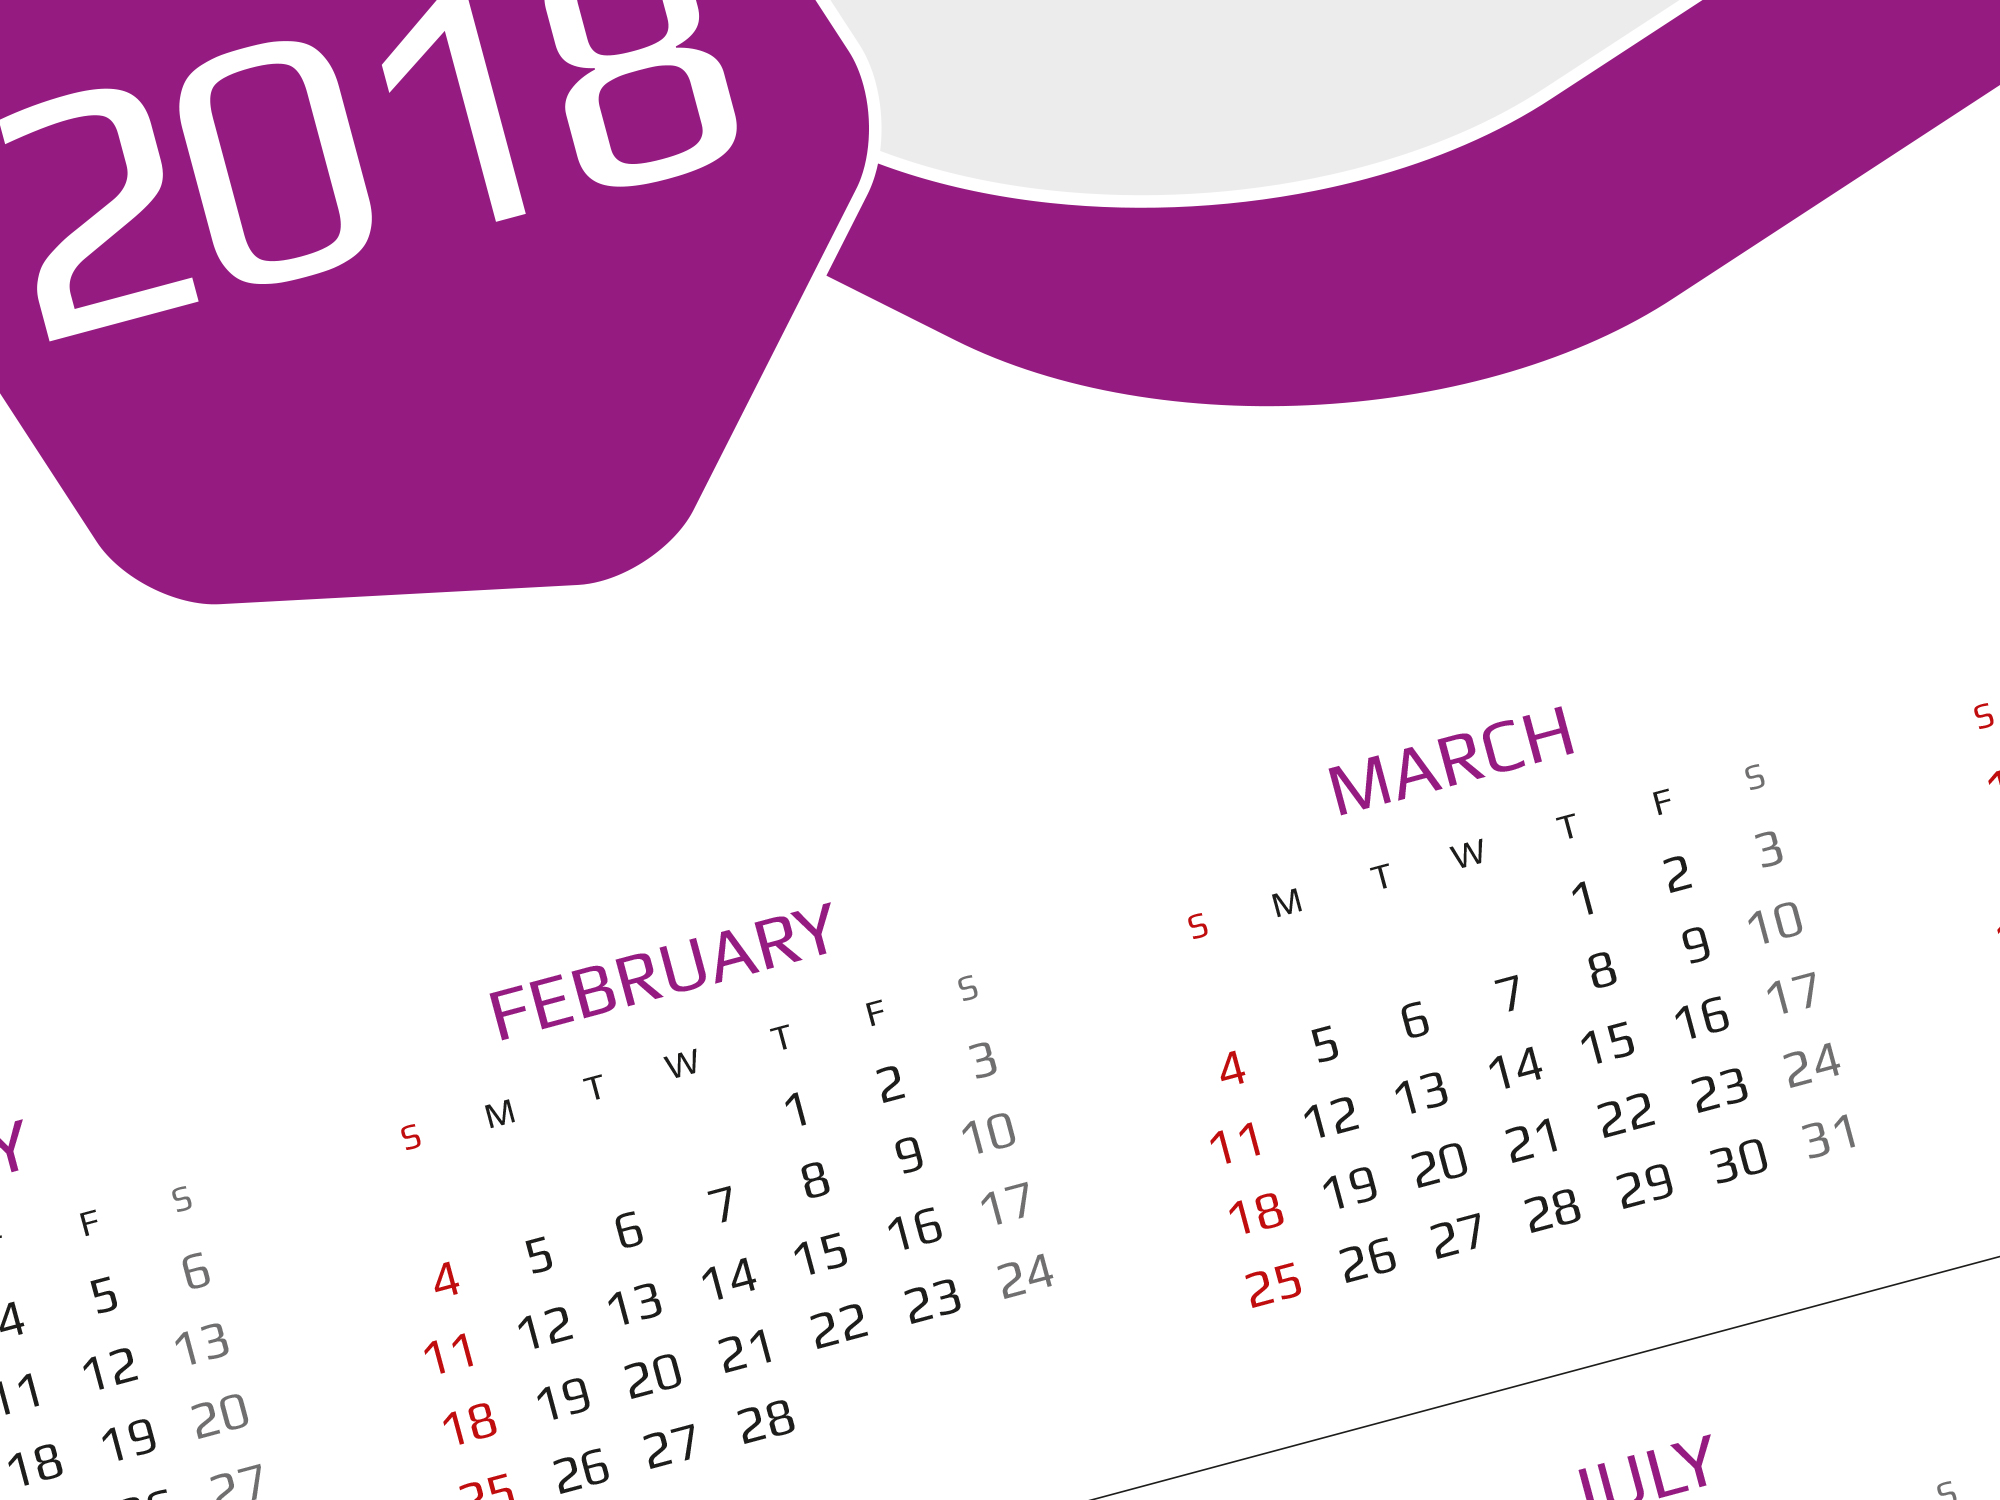 Calendar Poster Template : Calendar download this best template for poster wall